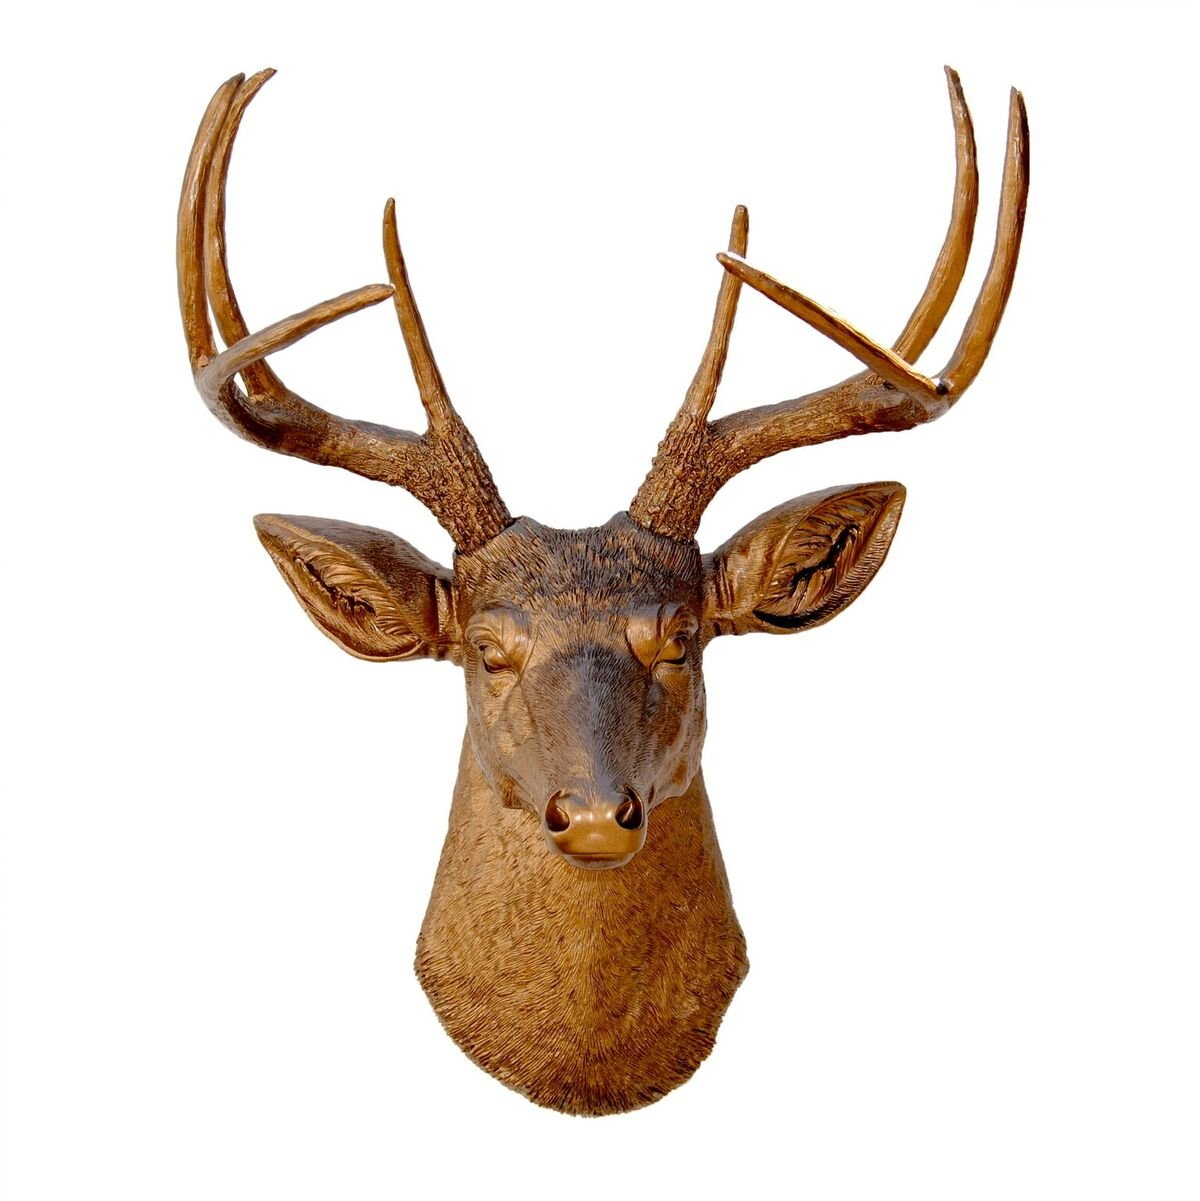 Amazon.com: Near and Deer Faux Taxidermy 8 Pt. Deer head Wall Mount,  White/Rose Gold: Home & Kitchen - Amazon.com: Near And Deer Faux Taxidermy 8 Pt. Deer Head Wall